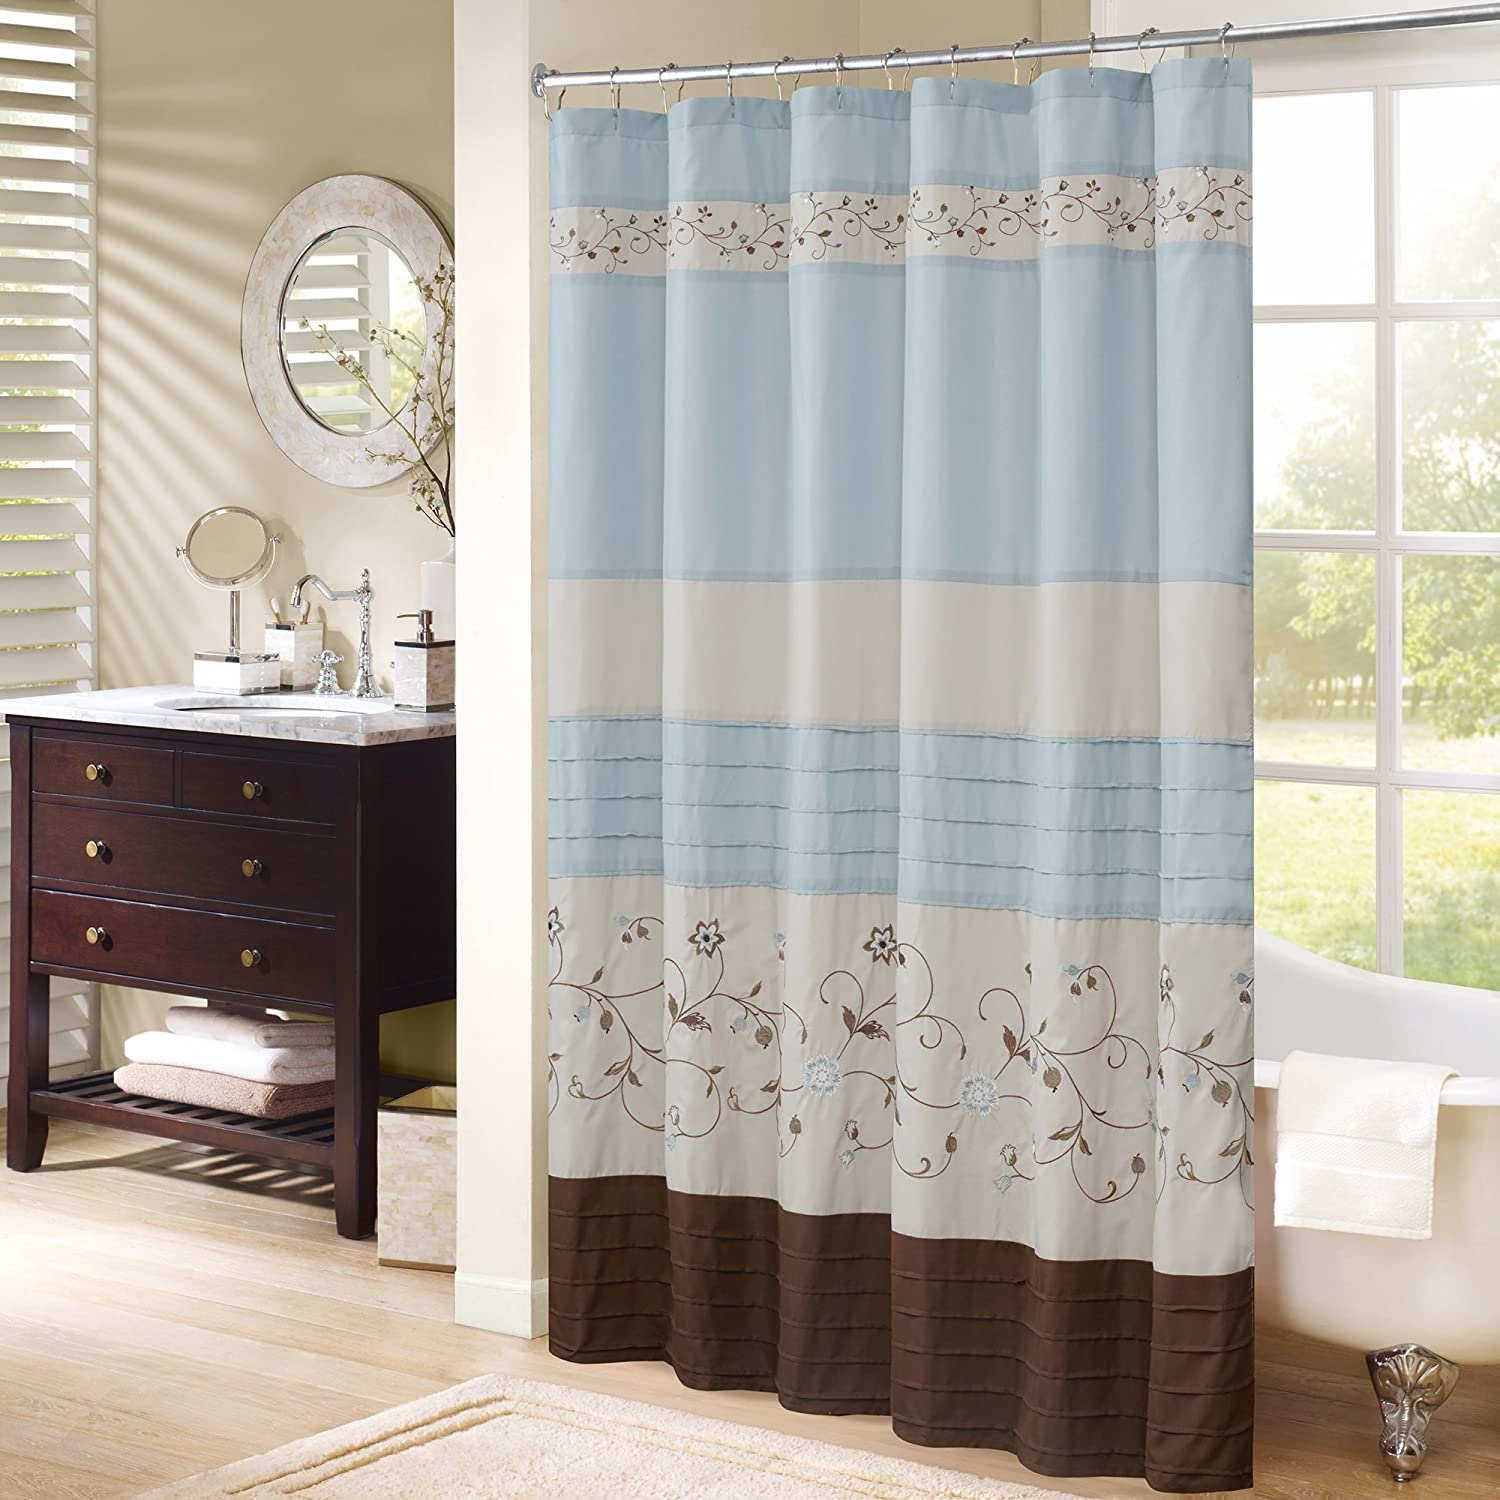 Comfort Spaces – Verene Shower Curtain – Blue & Brown – Panel Design and Floral Embroidery - 72x72 inches